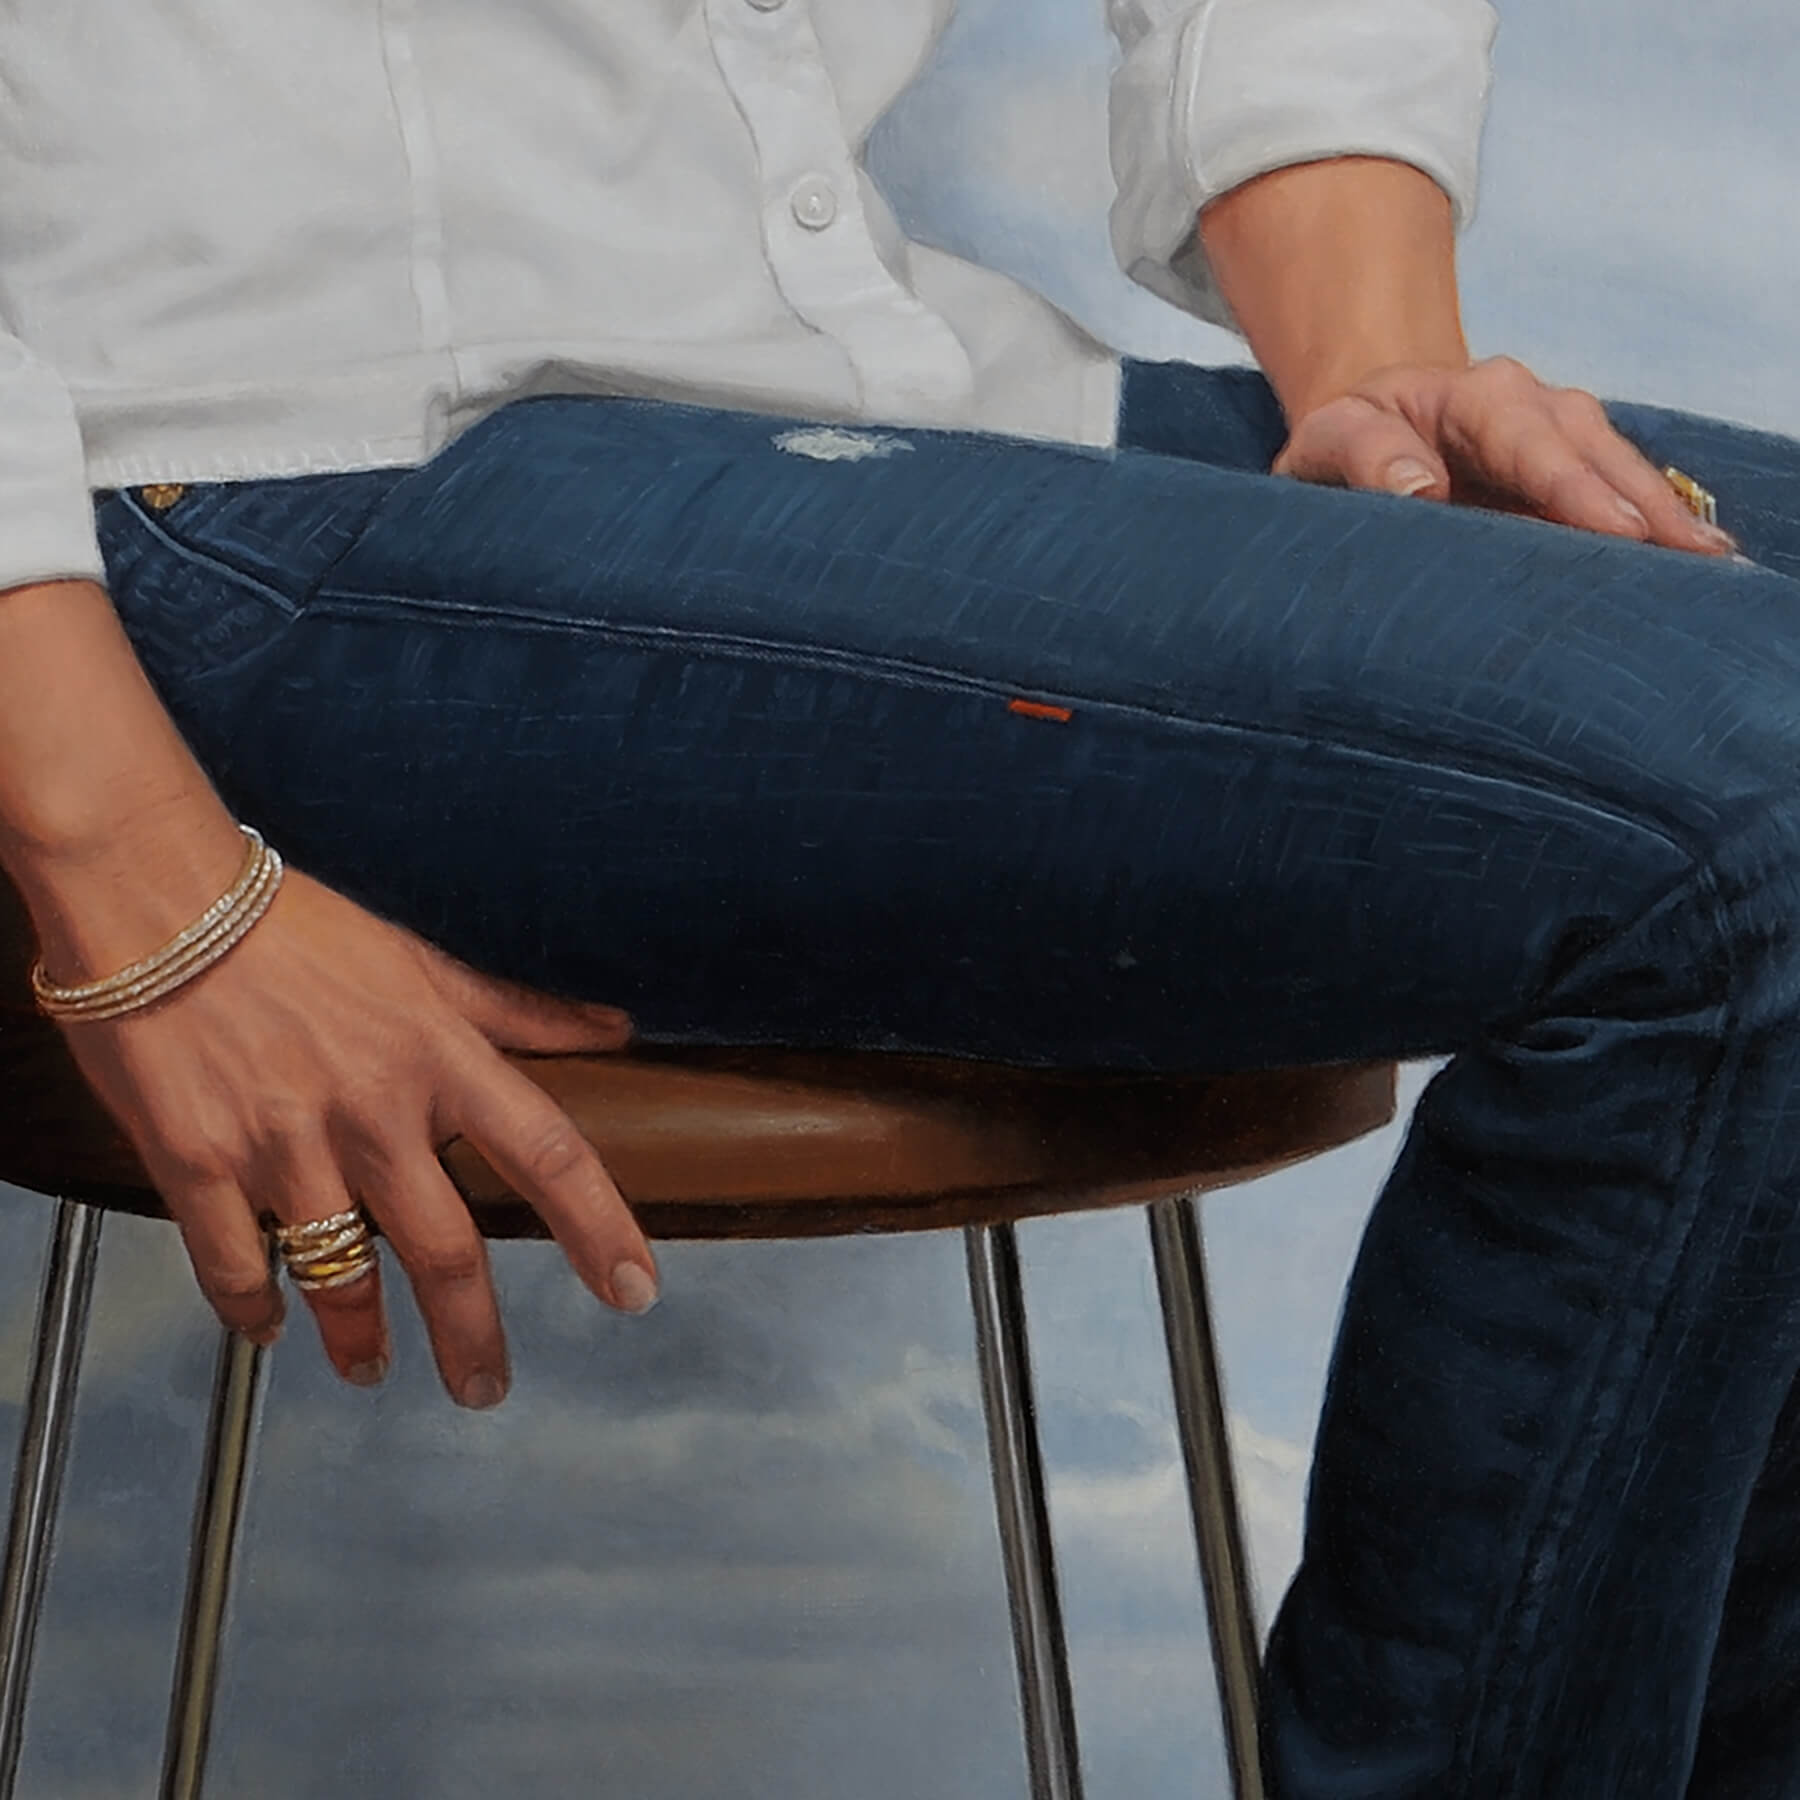 Fine Art Contemporary OilCommission; detail of hand with jewelry and jeans texture.